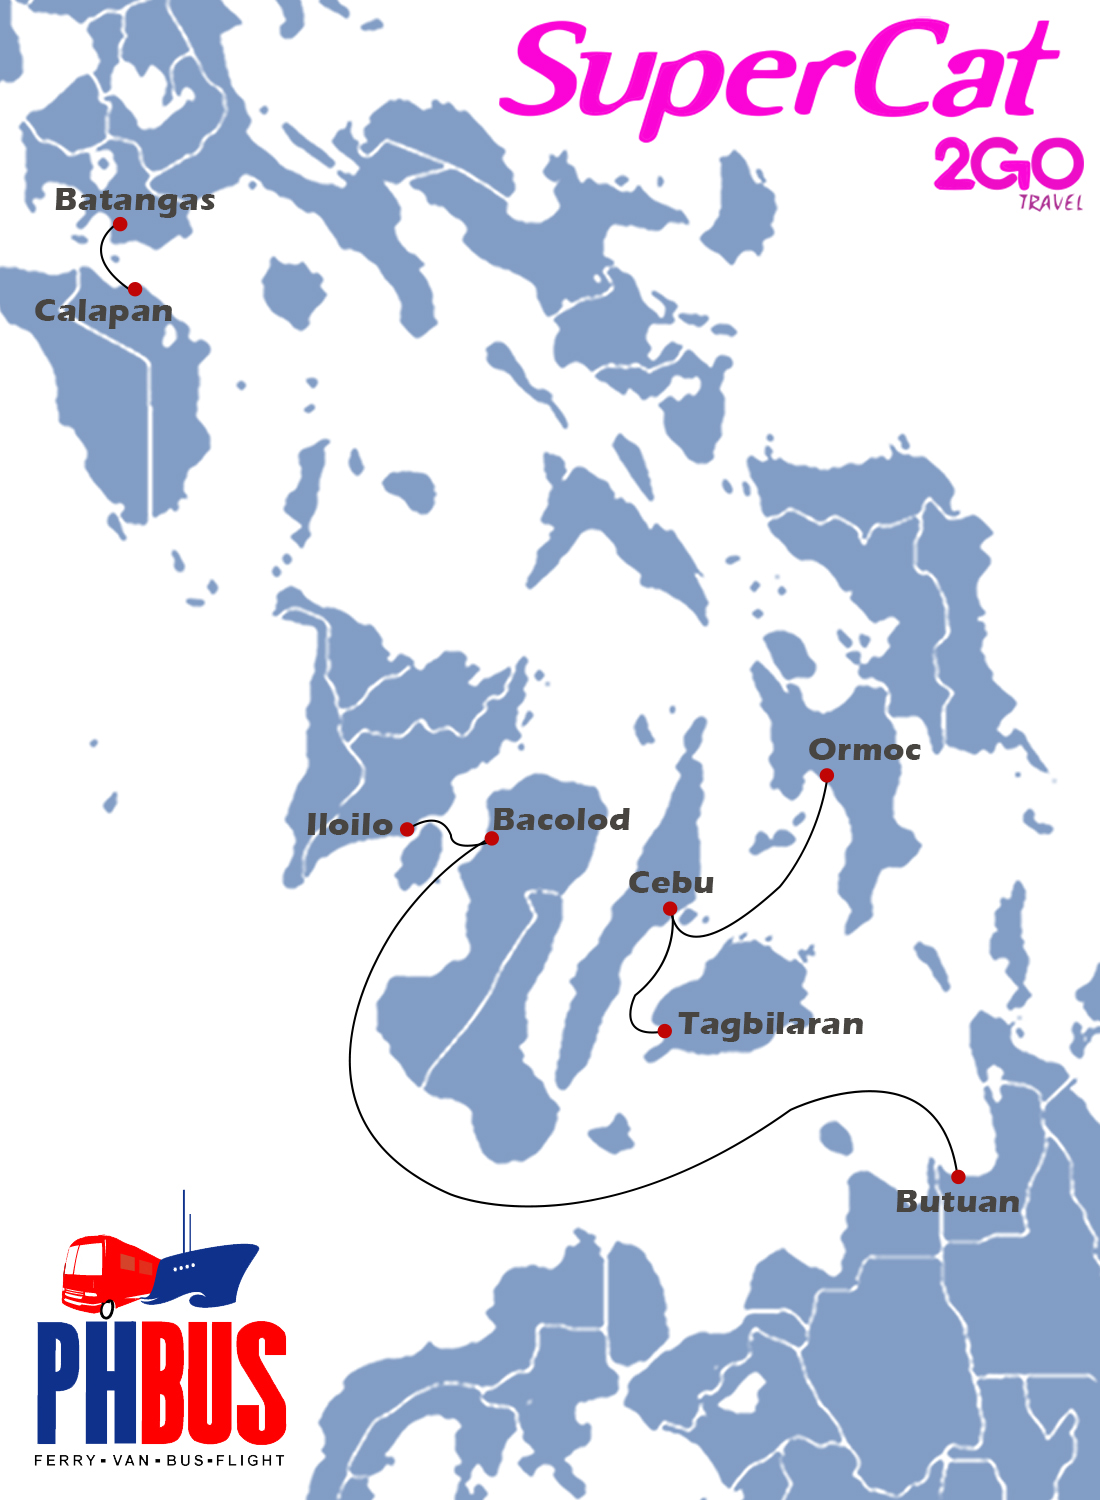 supercat-ferry-route-map-network-phbus.jpg